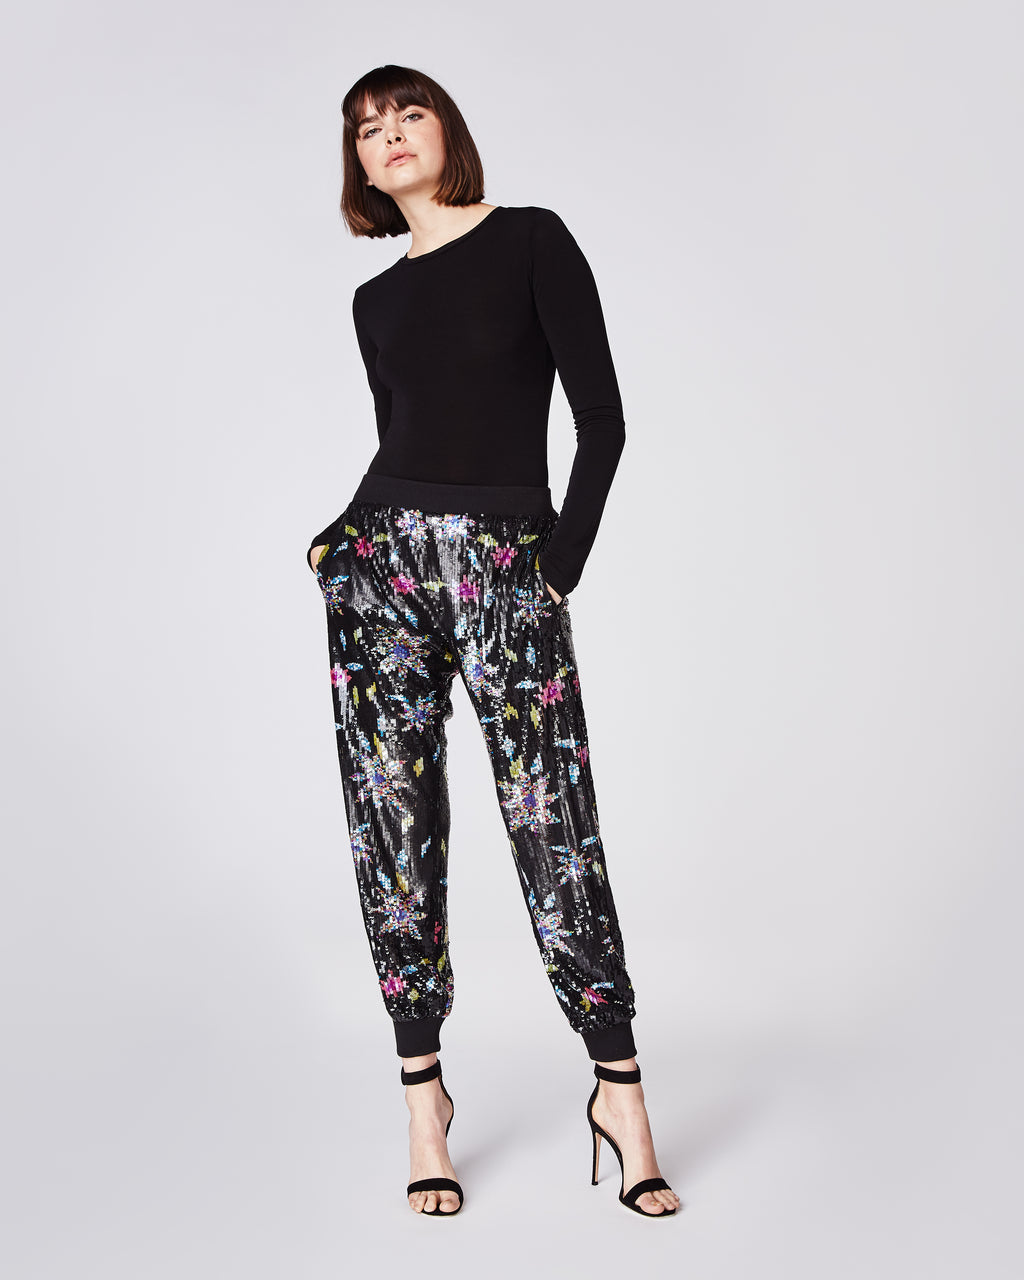 CO10113 - DAHLIA SEQUIN JOGGER - bottoms - pants - An update to our classic jogger, these full sequinpants feature an elastic waist band and cuffs. Pair with a strappy sandal and black top for a chic and sporty look. Fully lined.